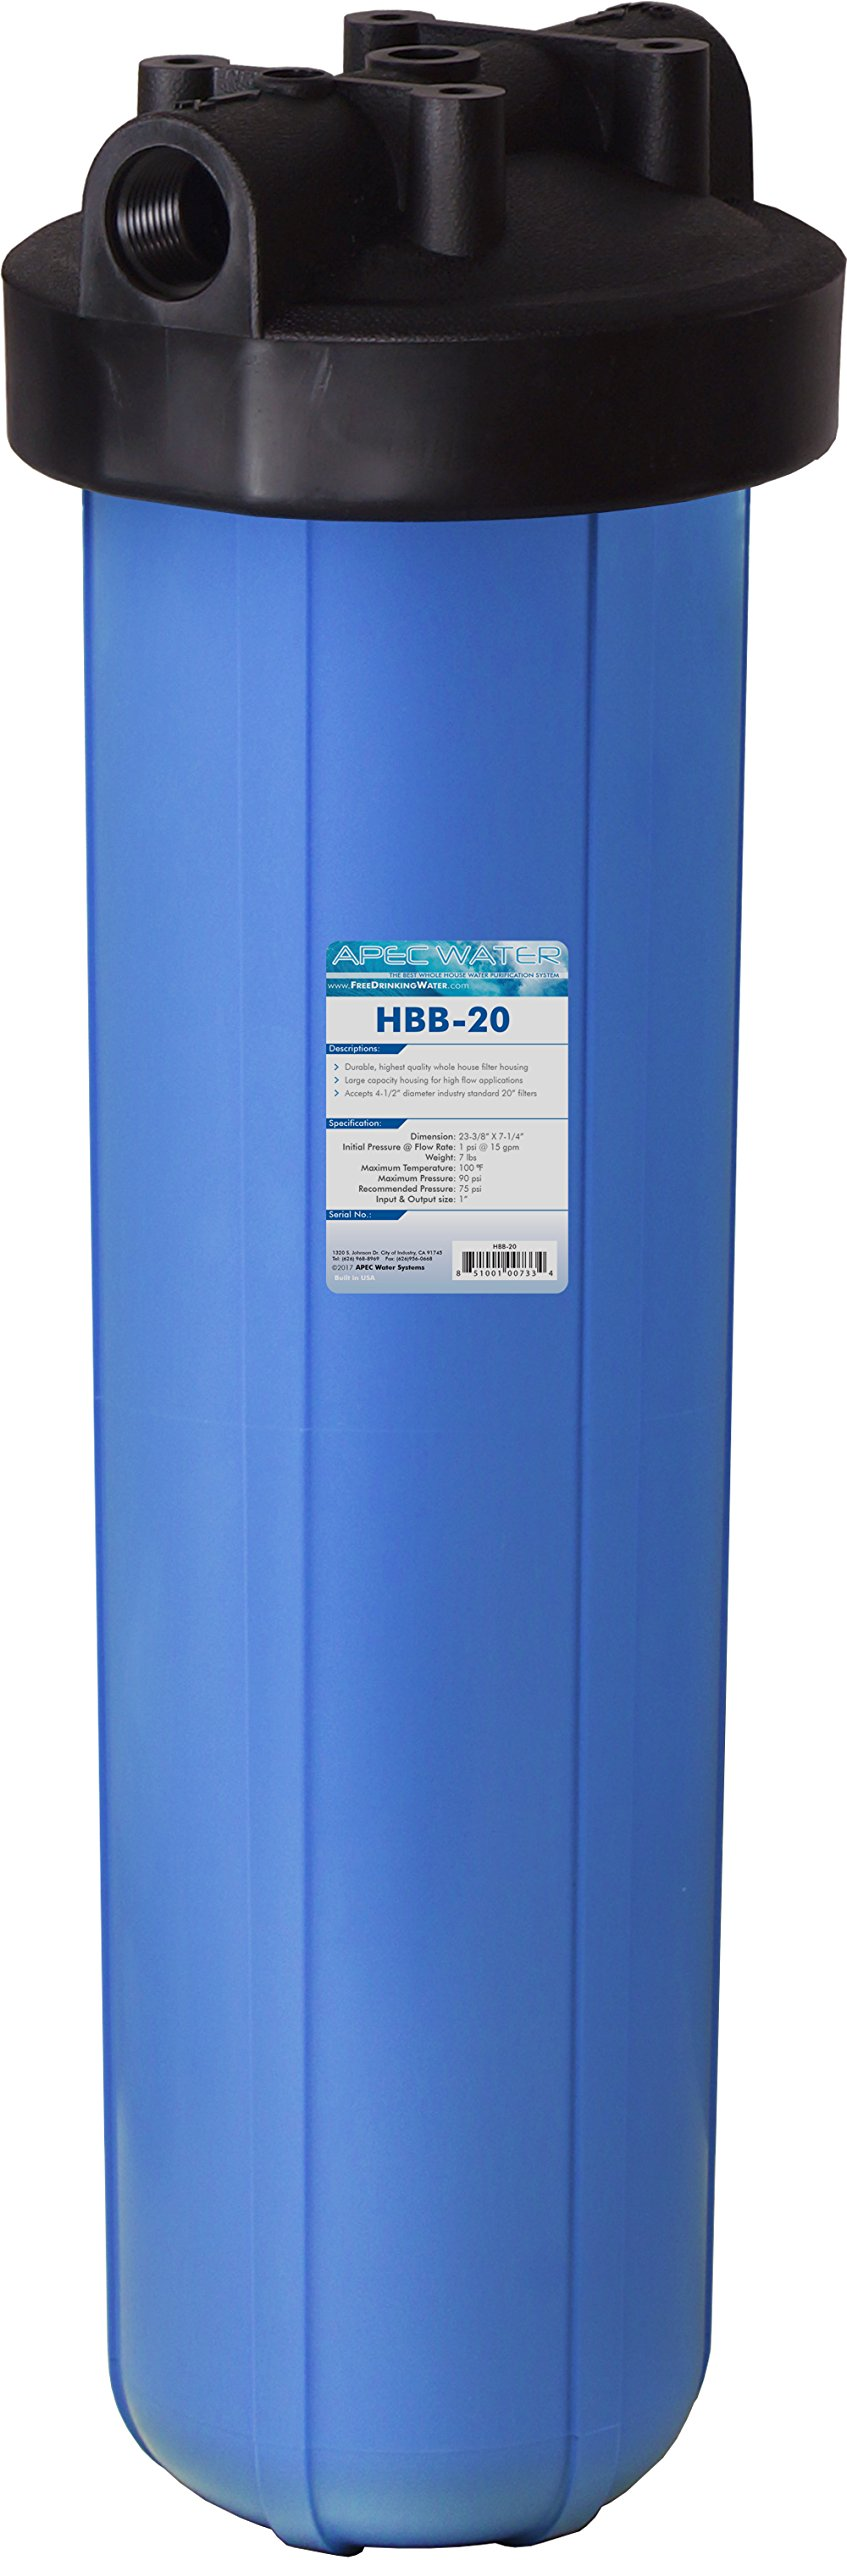 APEC Water Systems HBB-20 APEC 20 inch Big Blue Whole House Water Filter Housing 1 inch Inlet/Outlet